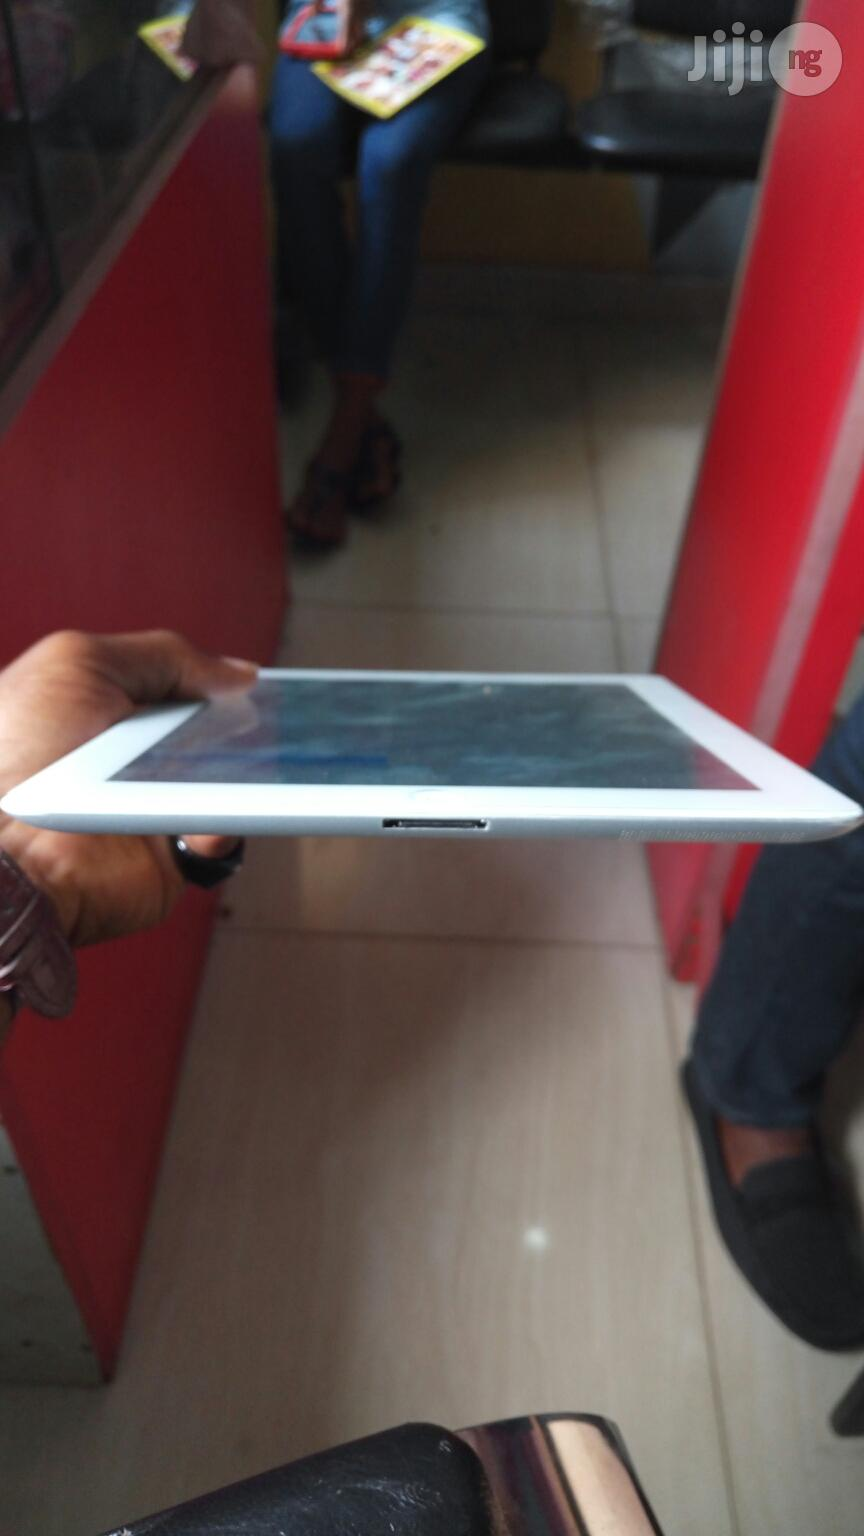 UK Used Apple iPad 3 Silver 32Gb | Mobile Phones for sale in Ikeja, Lagos State, Nigeria